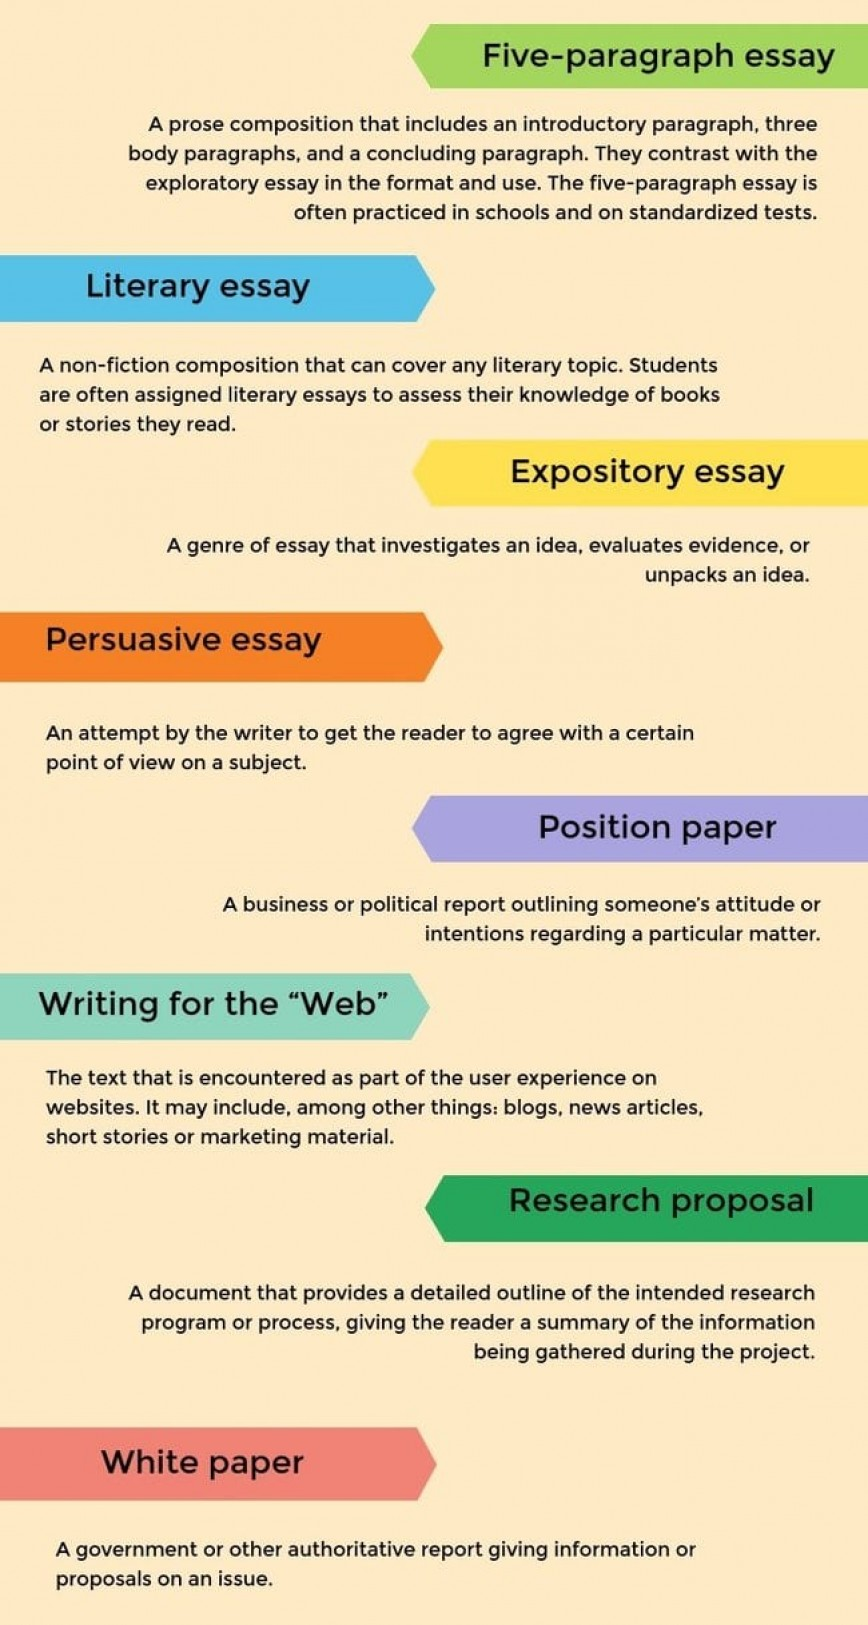 011 Oz Types Of Essays Essay Example Paragraph Best 5 Topics For High School Middle 868